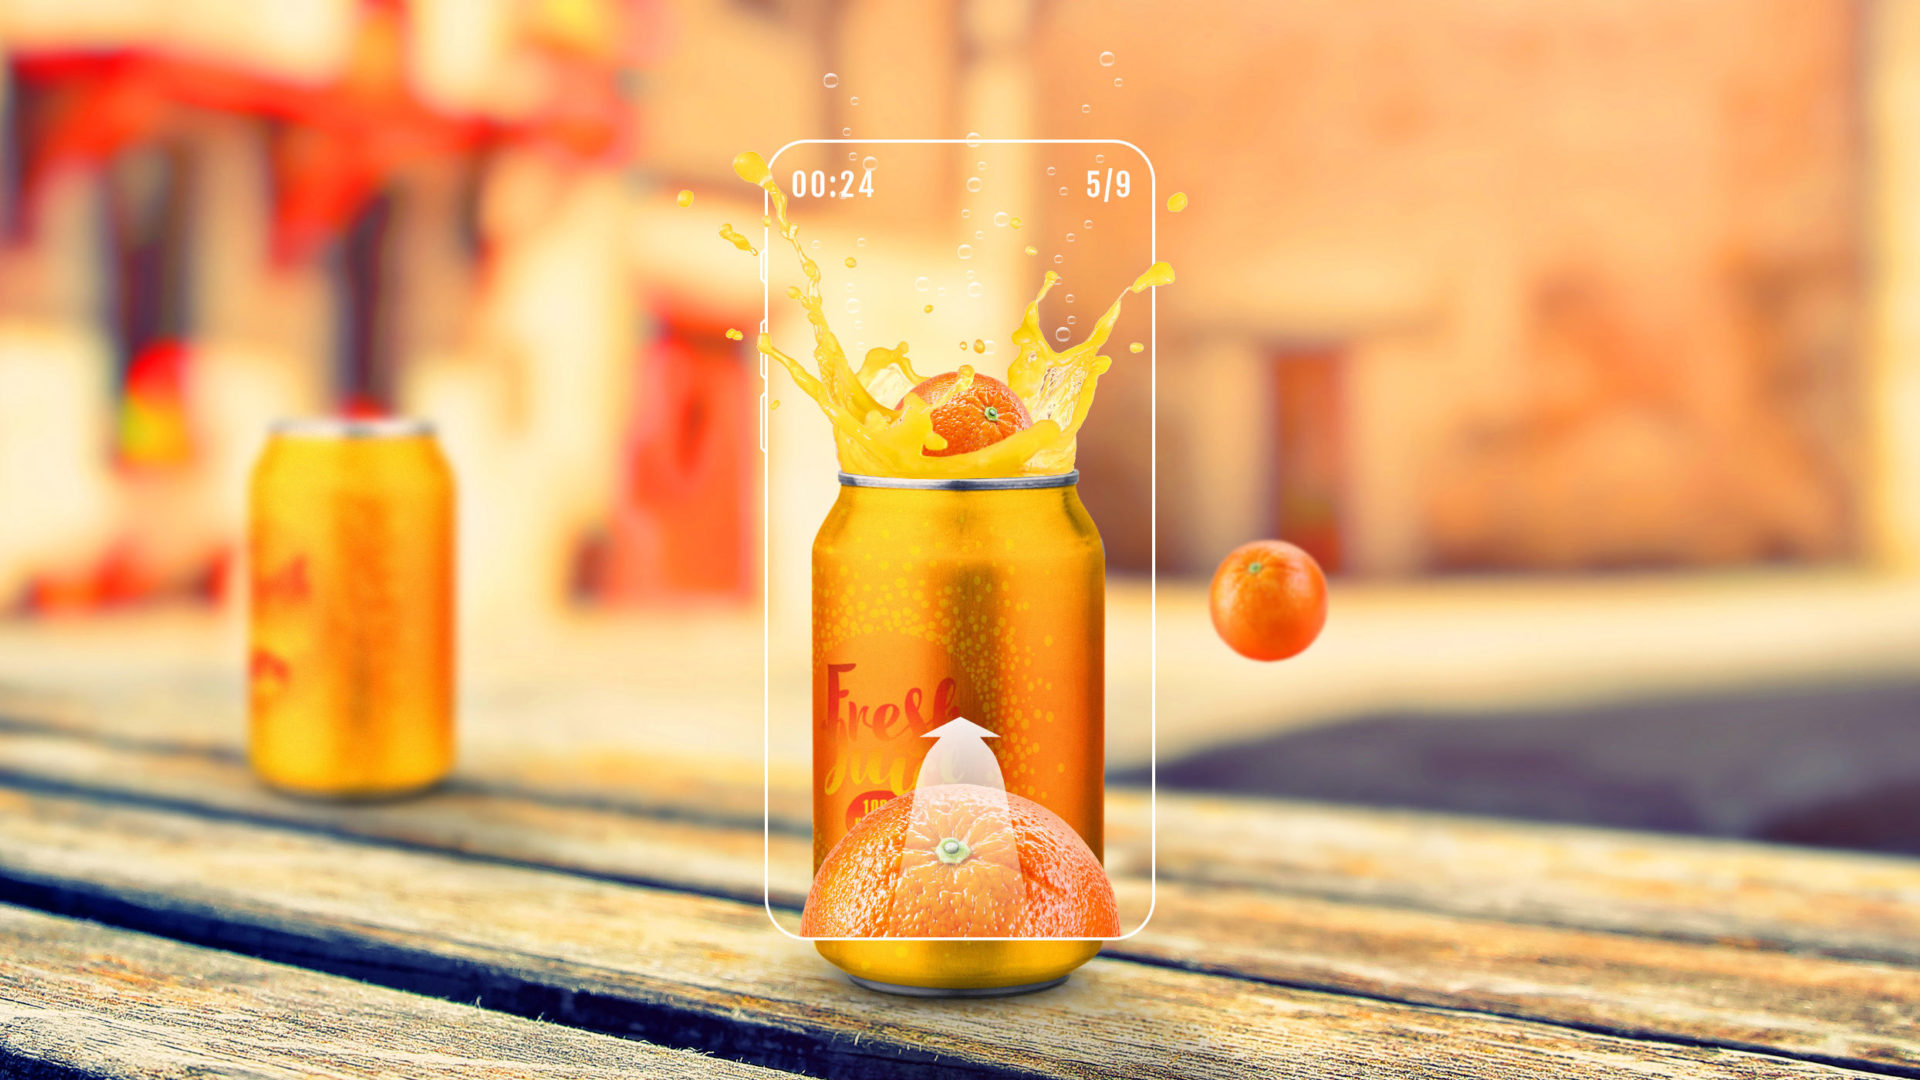 5 ways augmented reality benefits the beverage industry - Blog - Blippar